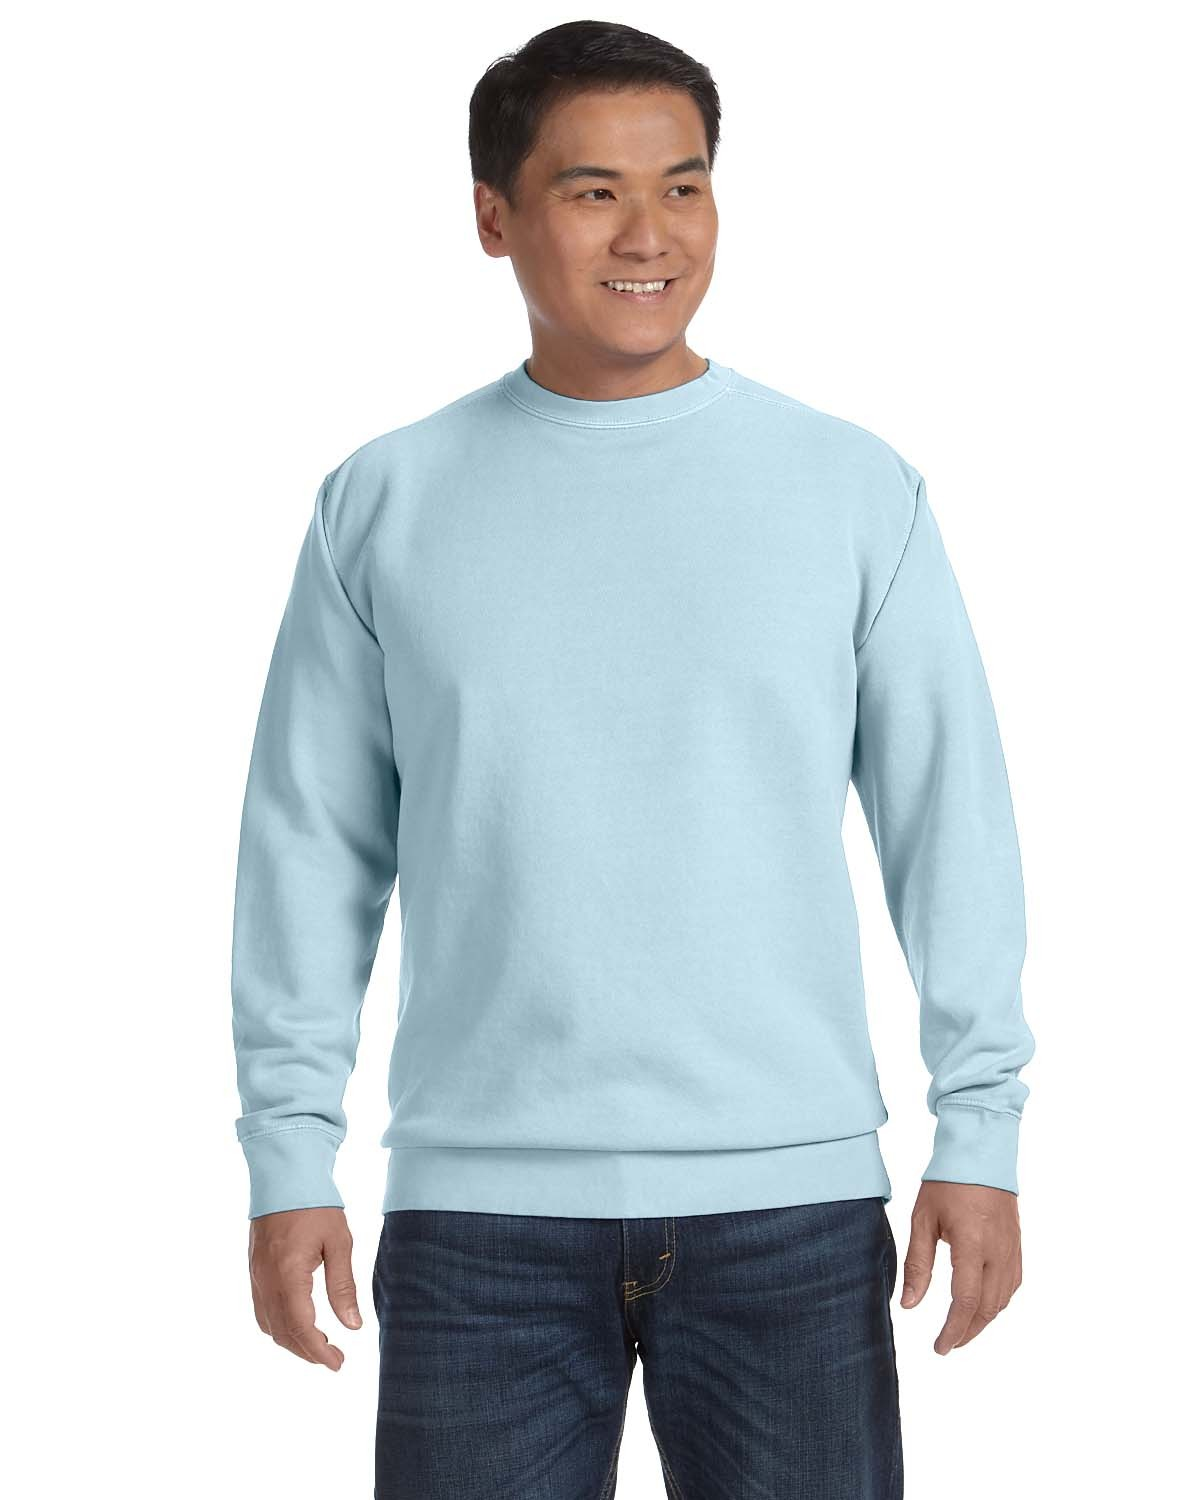 1566 Comfort Colors CHAMBRAY